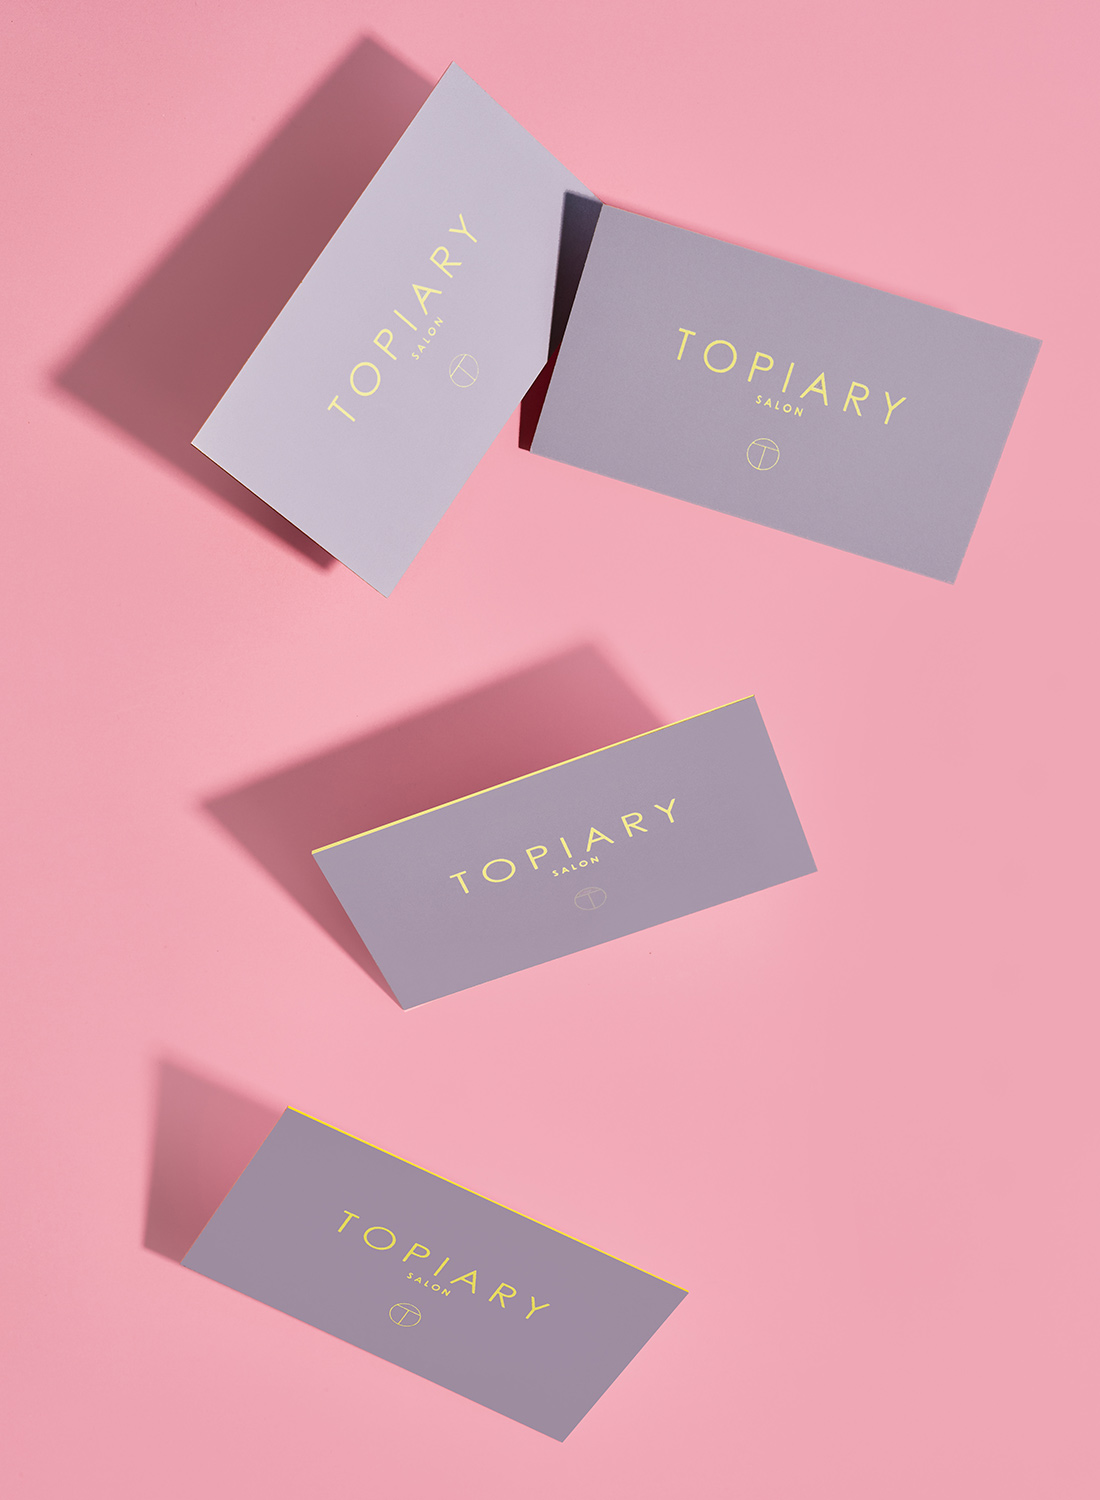 Topiary Salon business cards.